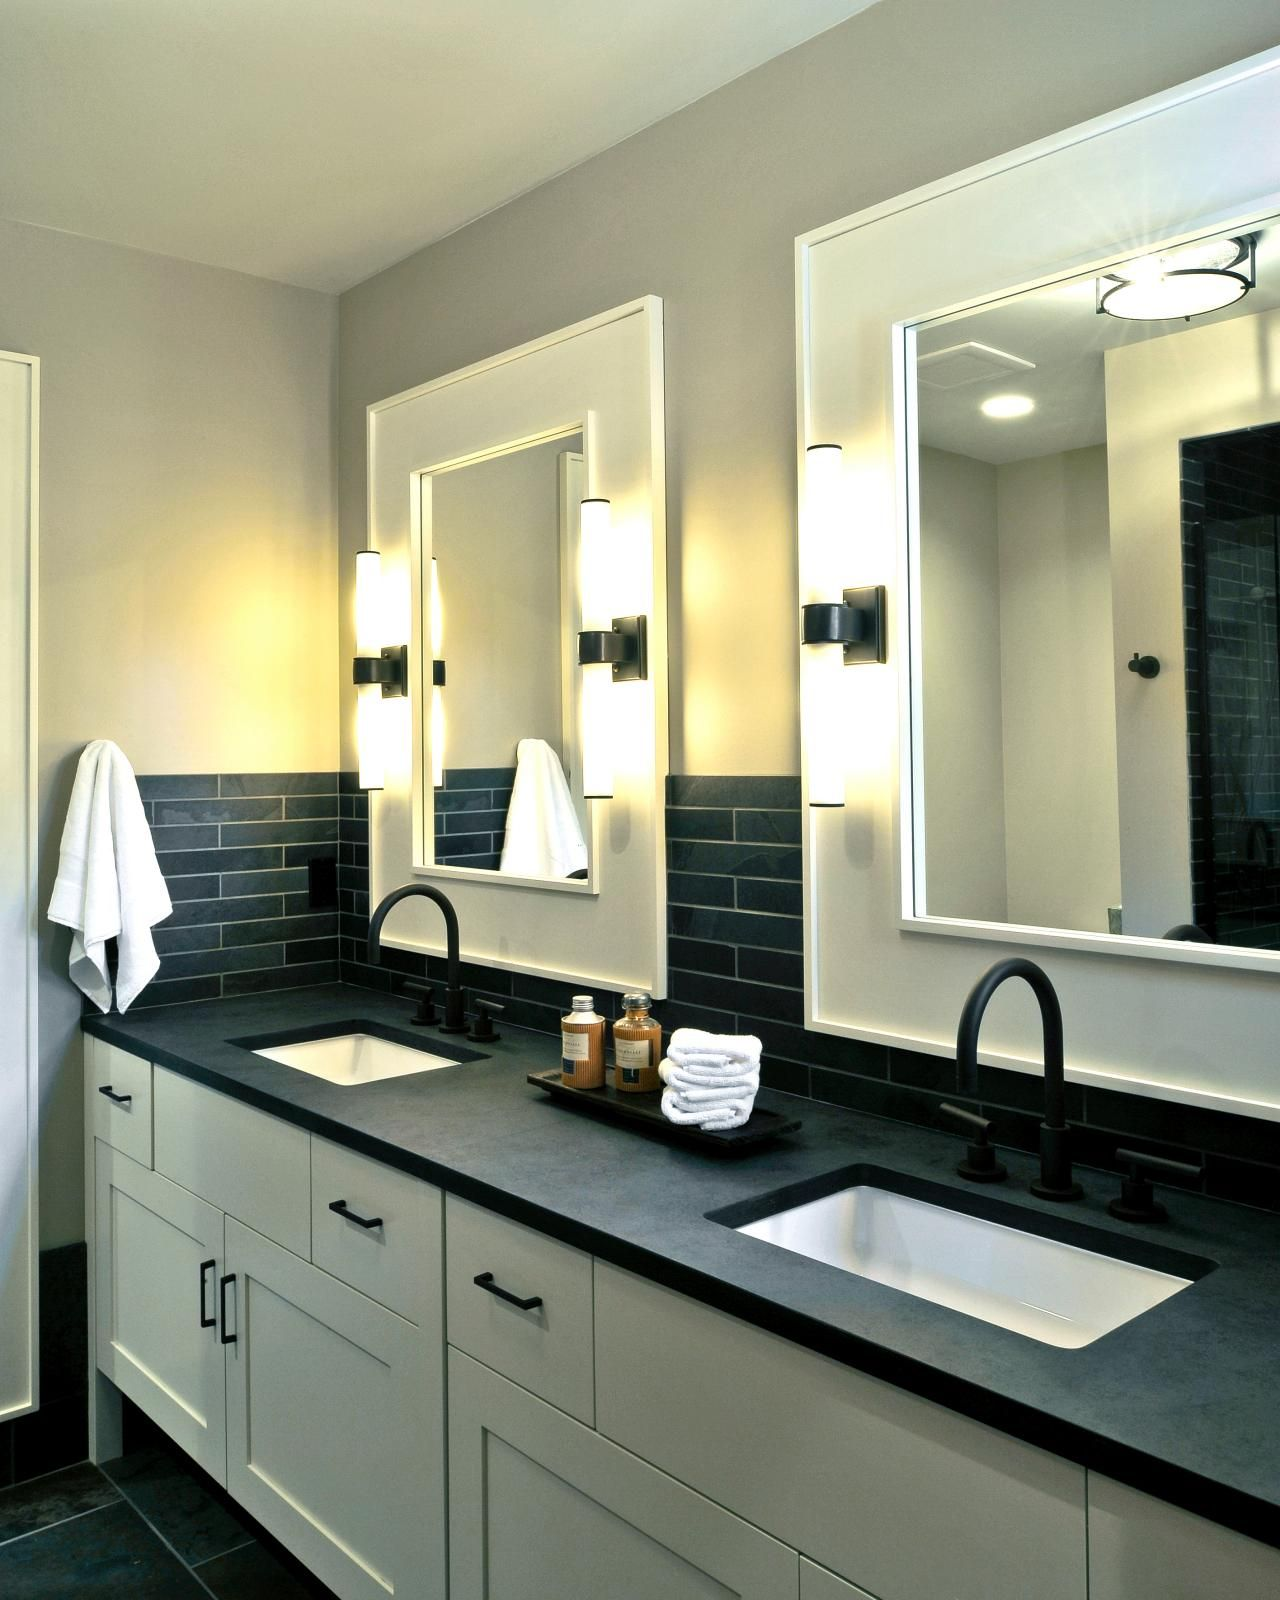 Black and white expertly combine for a compelling, high-contrast look in this contemporary bathroom. Dual sinks and mirrors provide plenty of space for two.